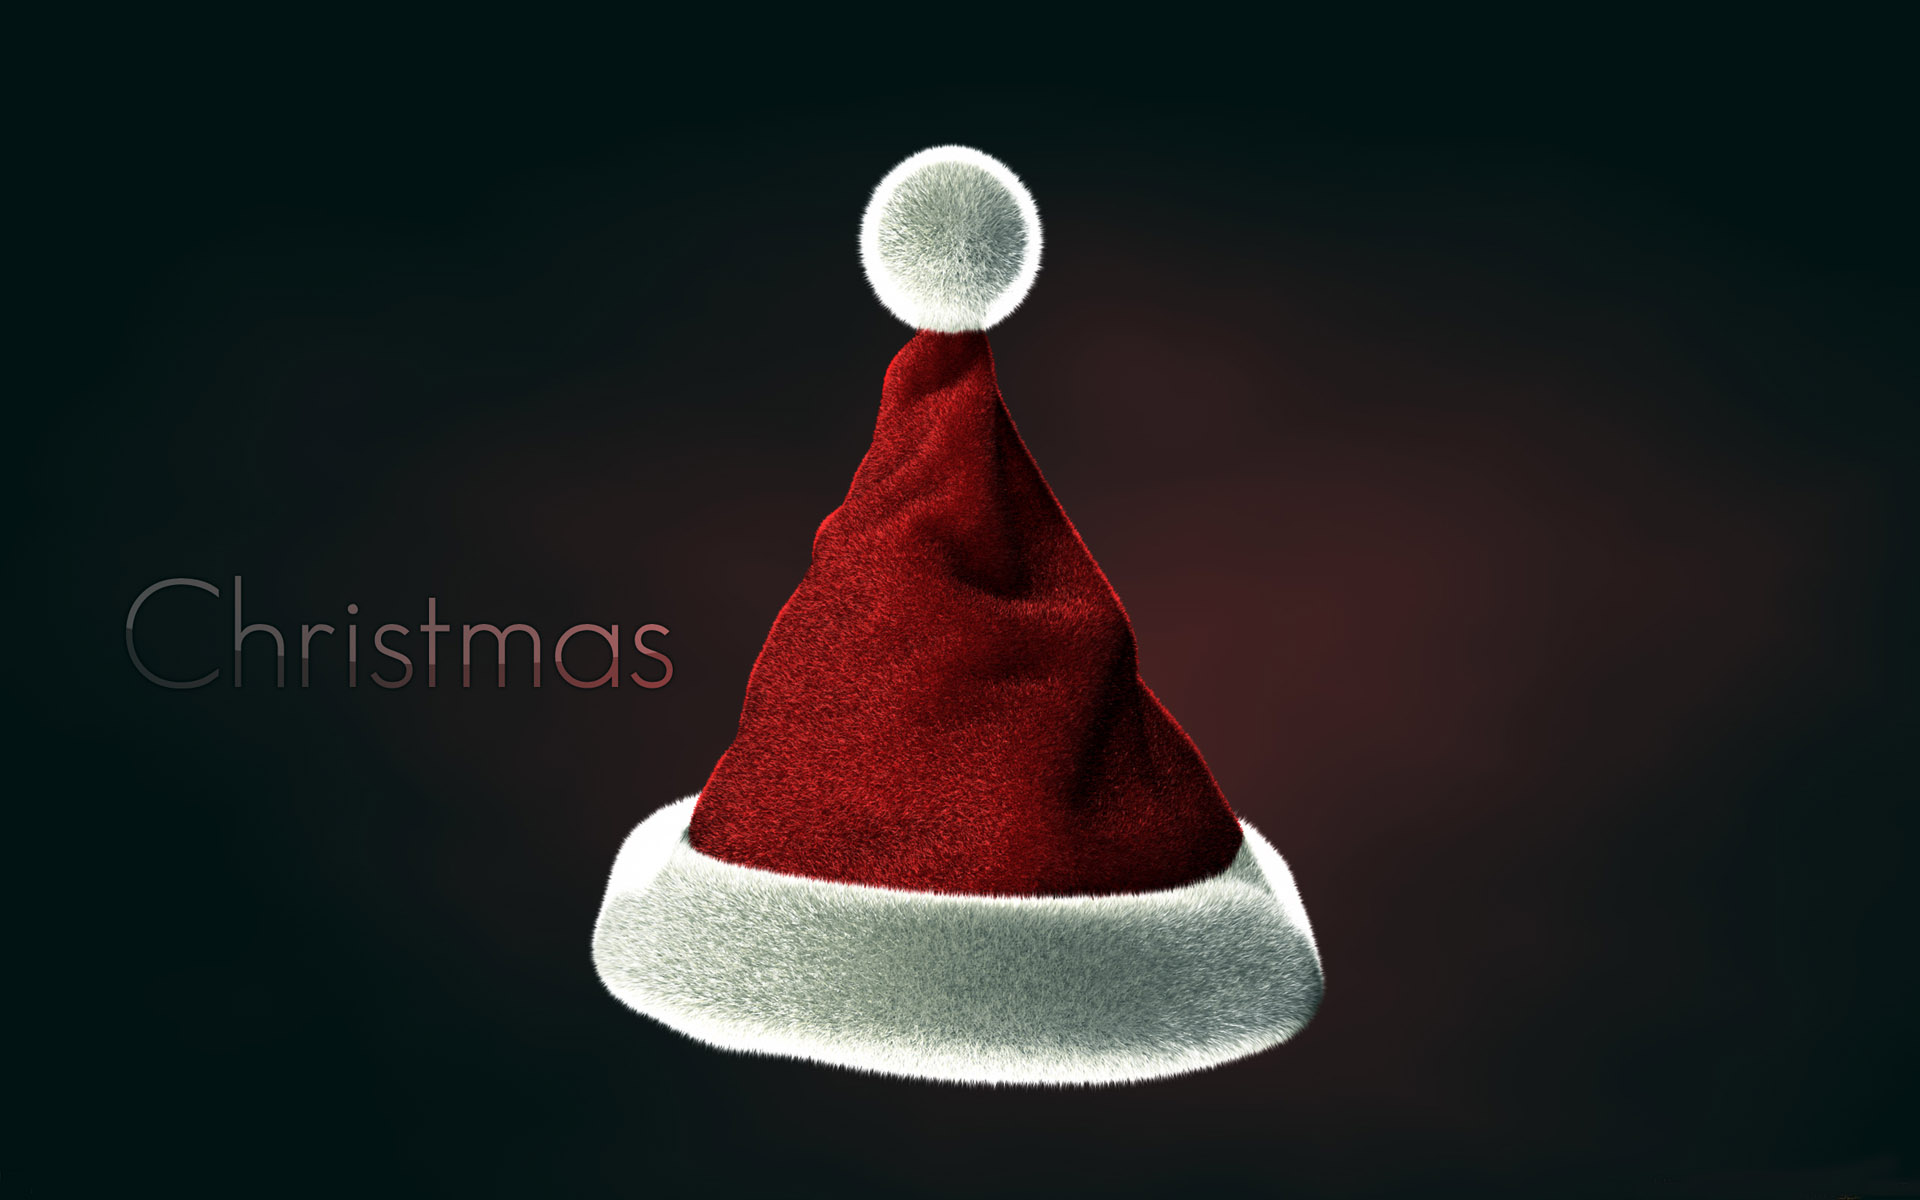 Christmas wallpaper high definition 26923